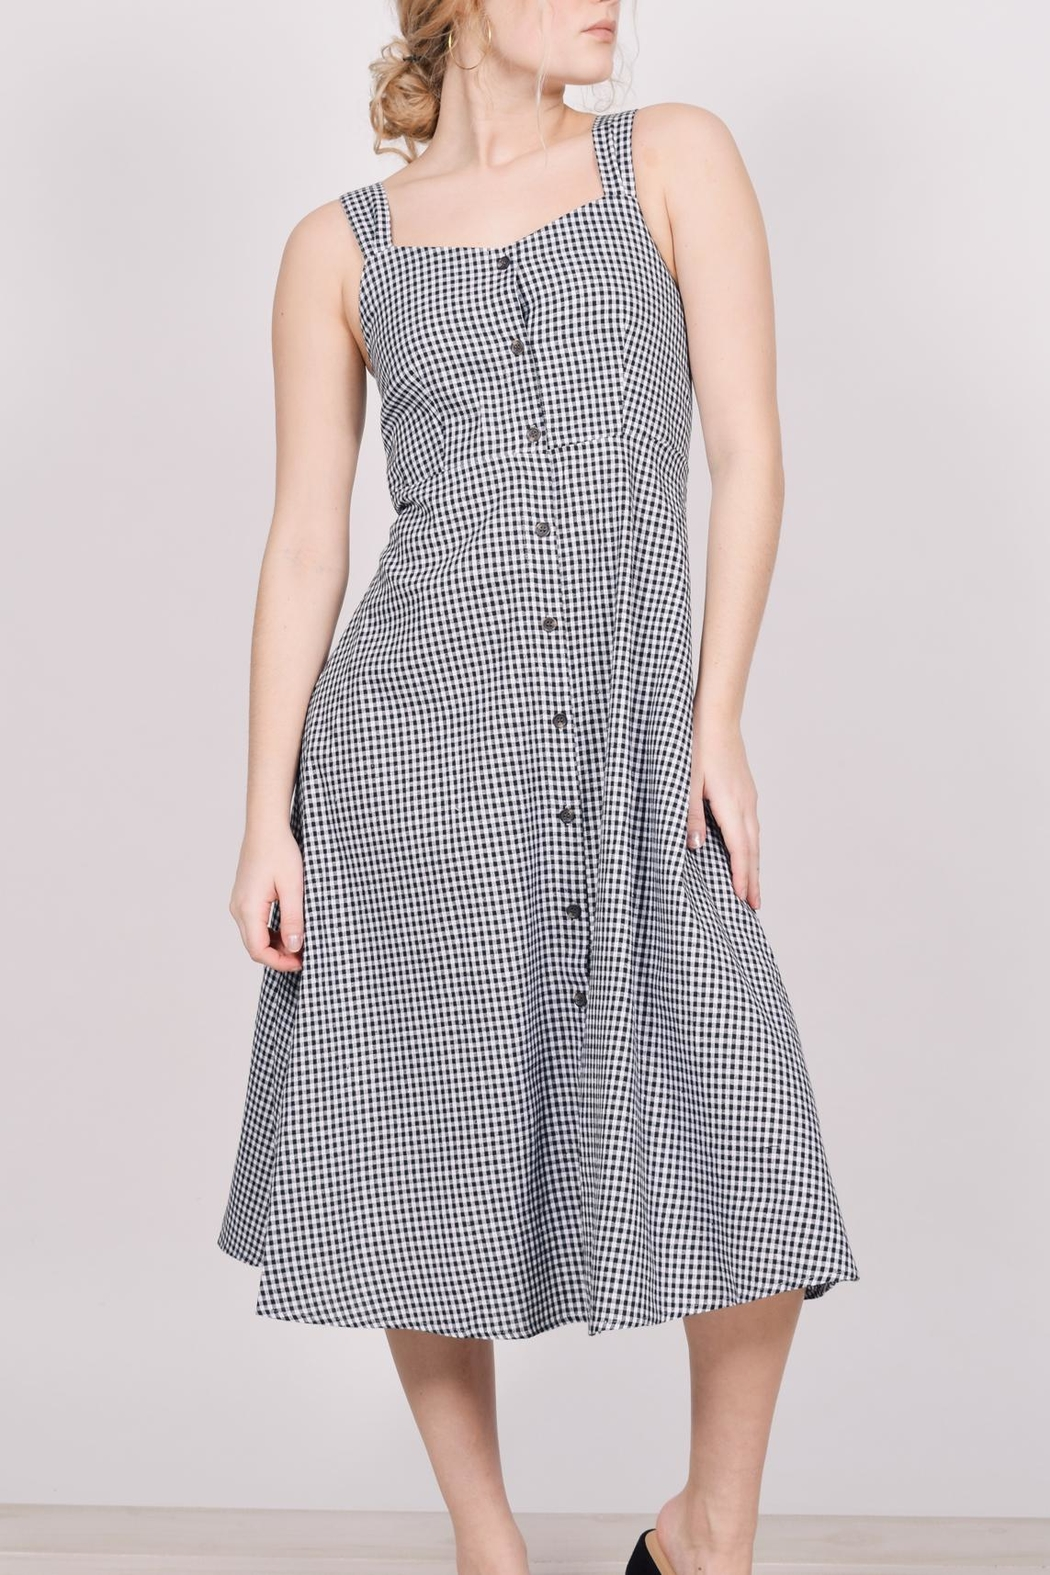 Unbranded Gingham Midi Dress - Side Cropped Image